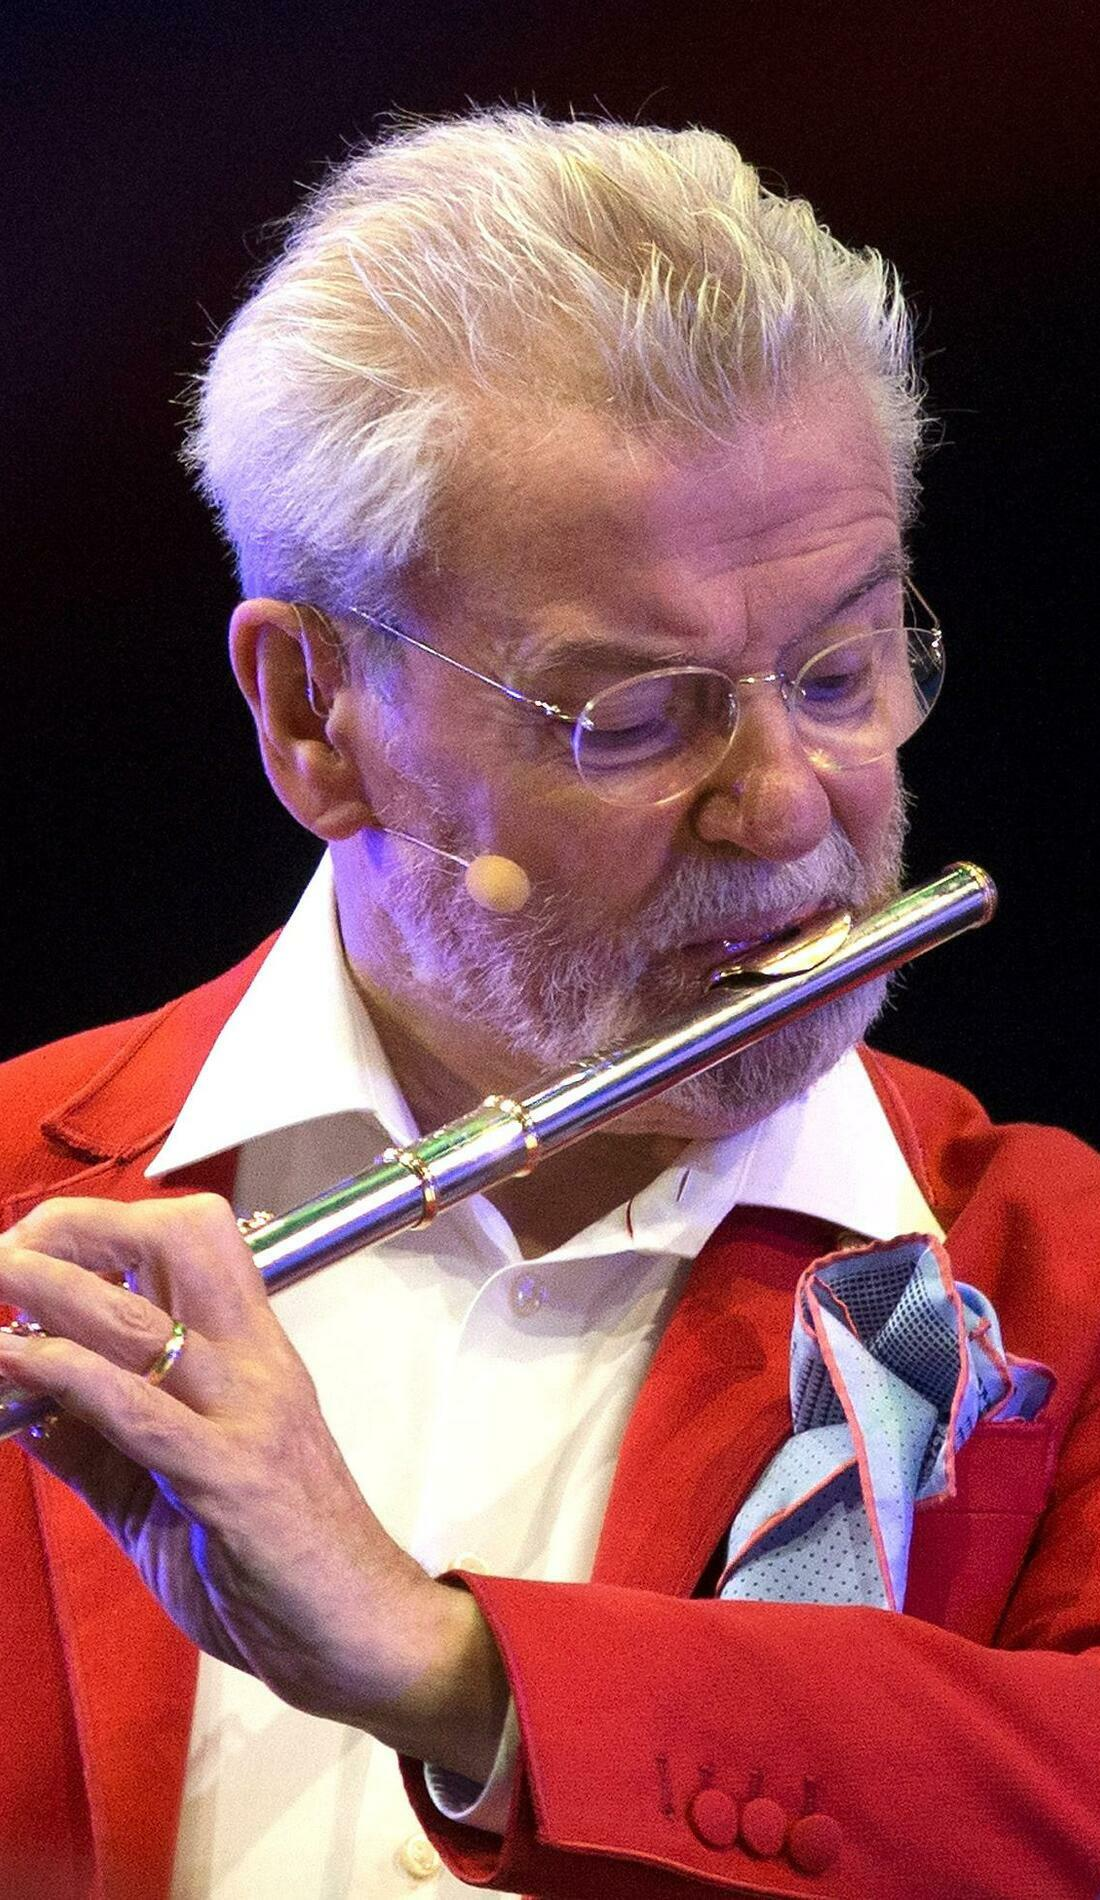 A James Galway live event